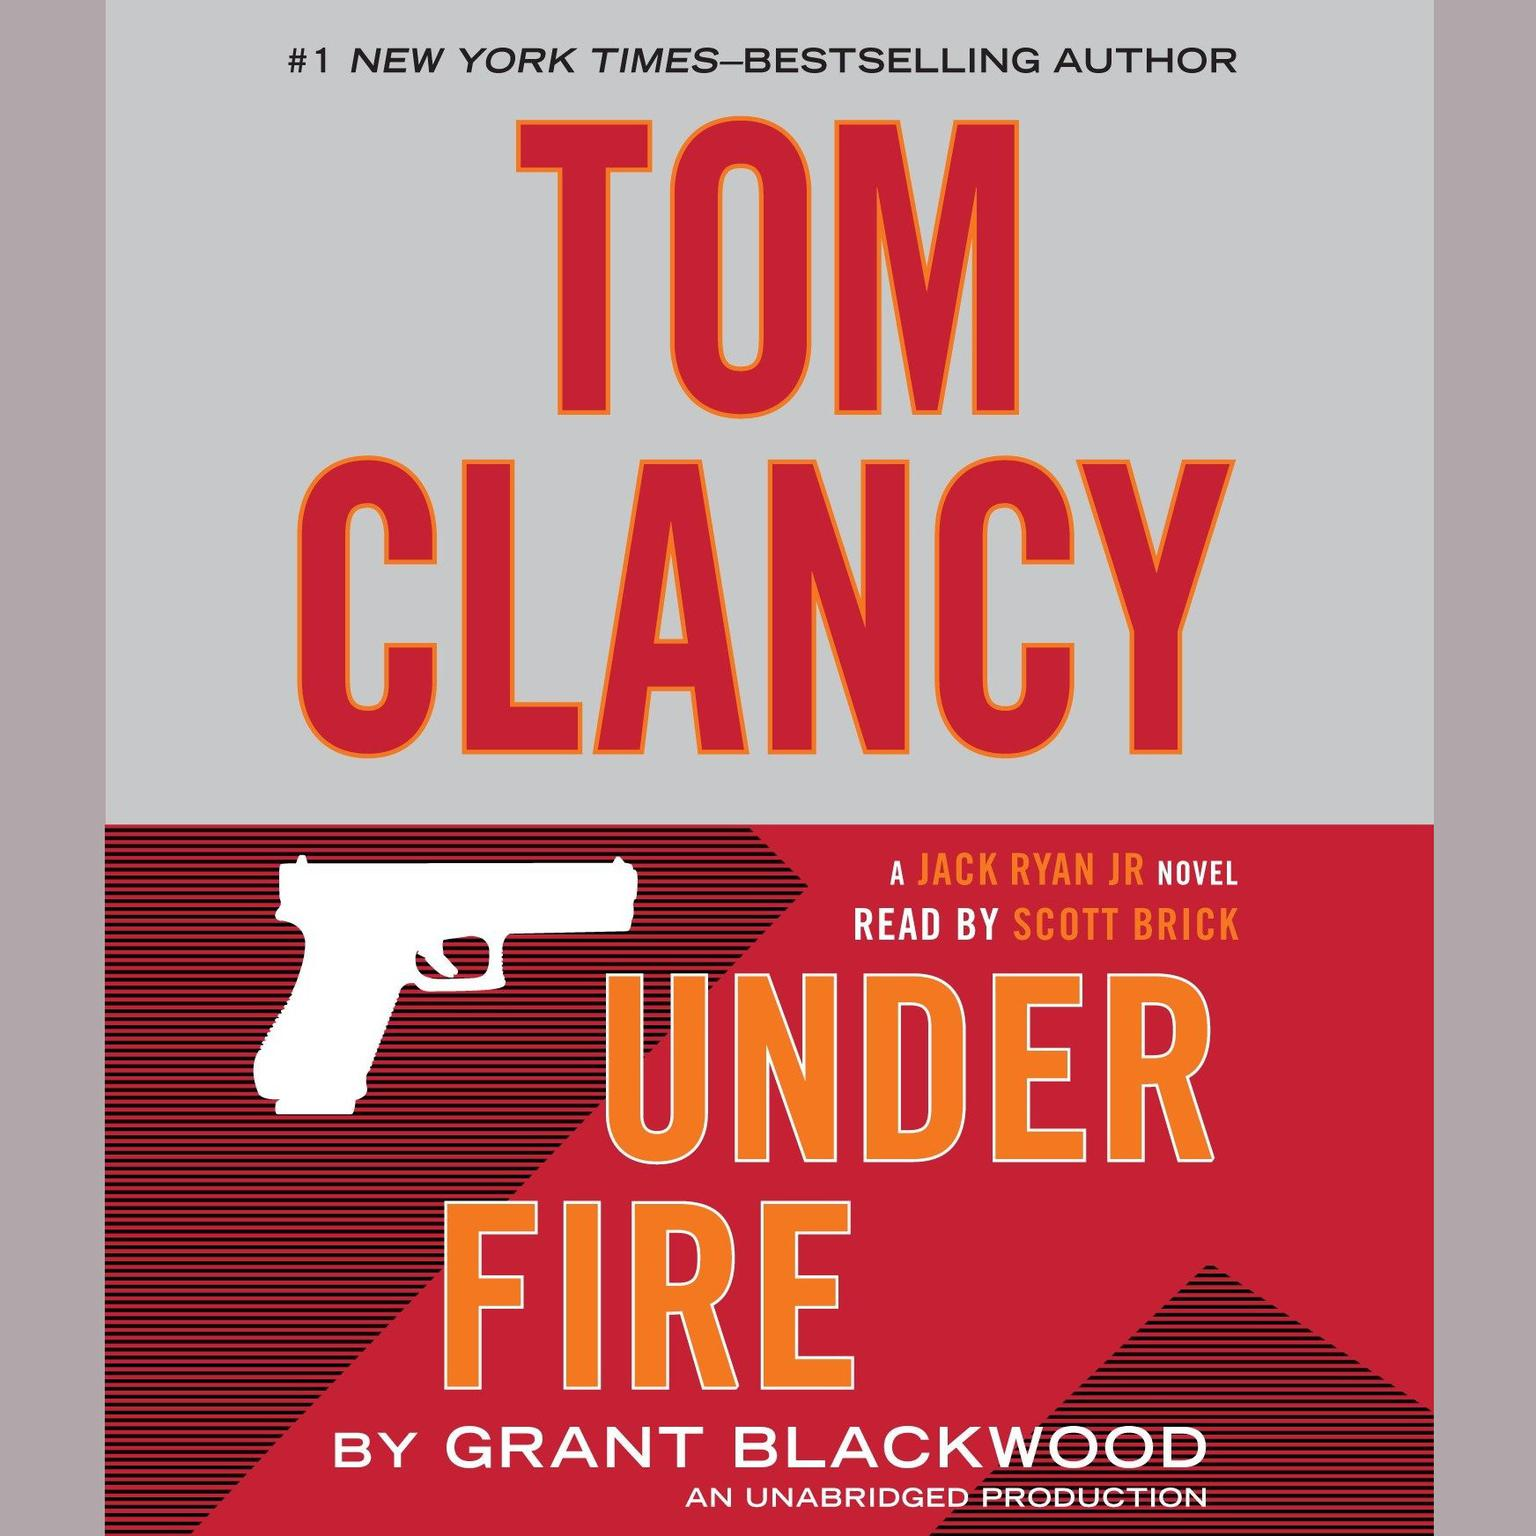 Printable Tom Clancy Under Fire: A Jack Ryan Jr. Novel Audiobook Cover Art